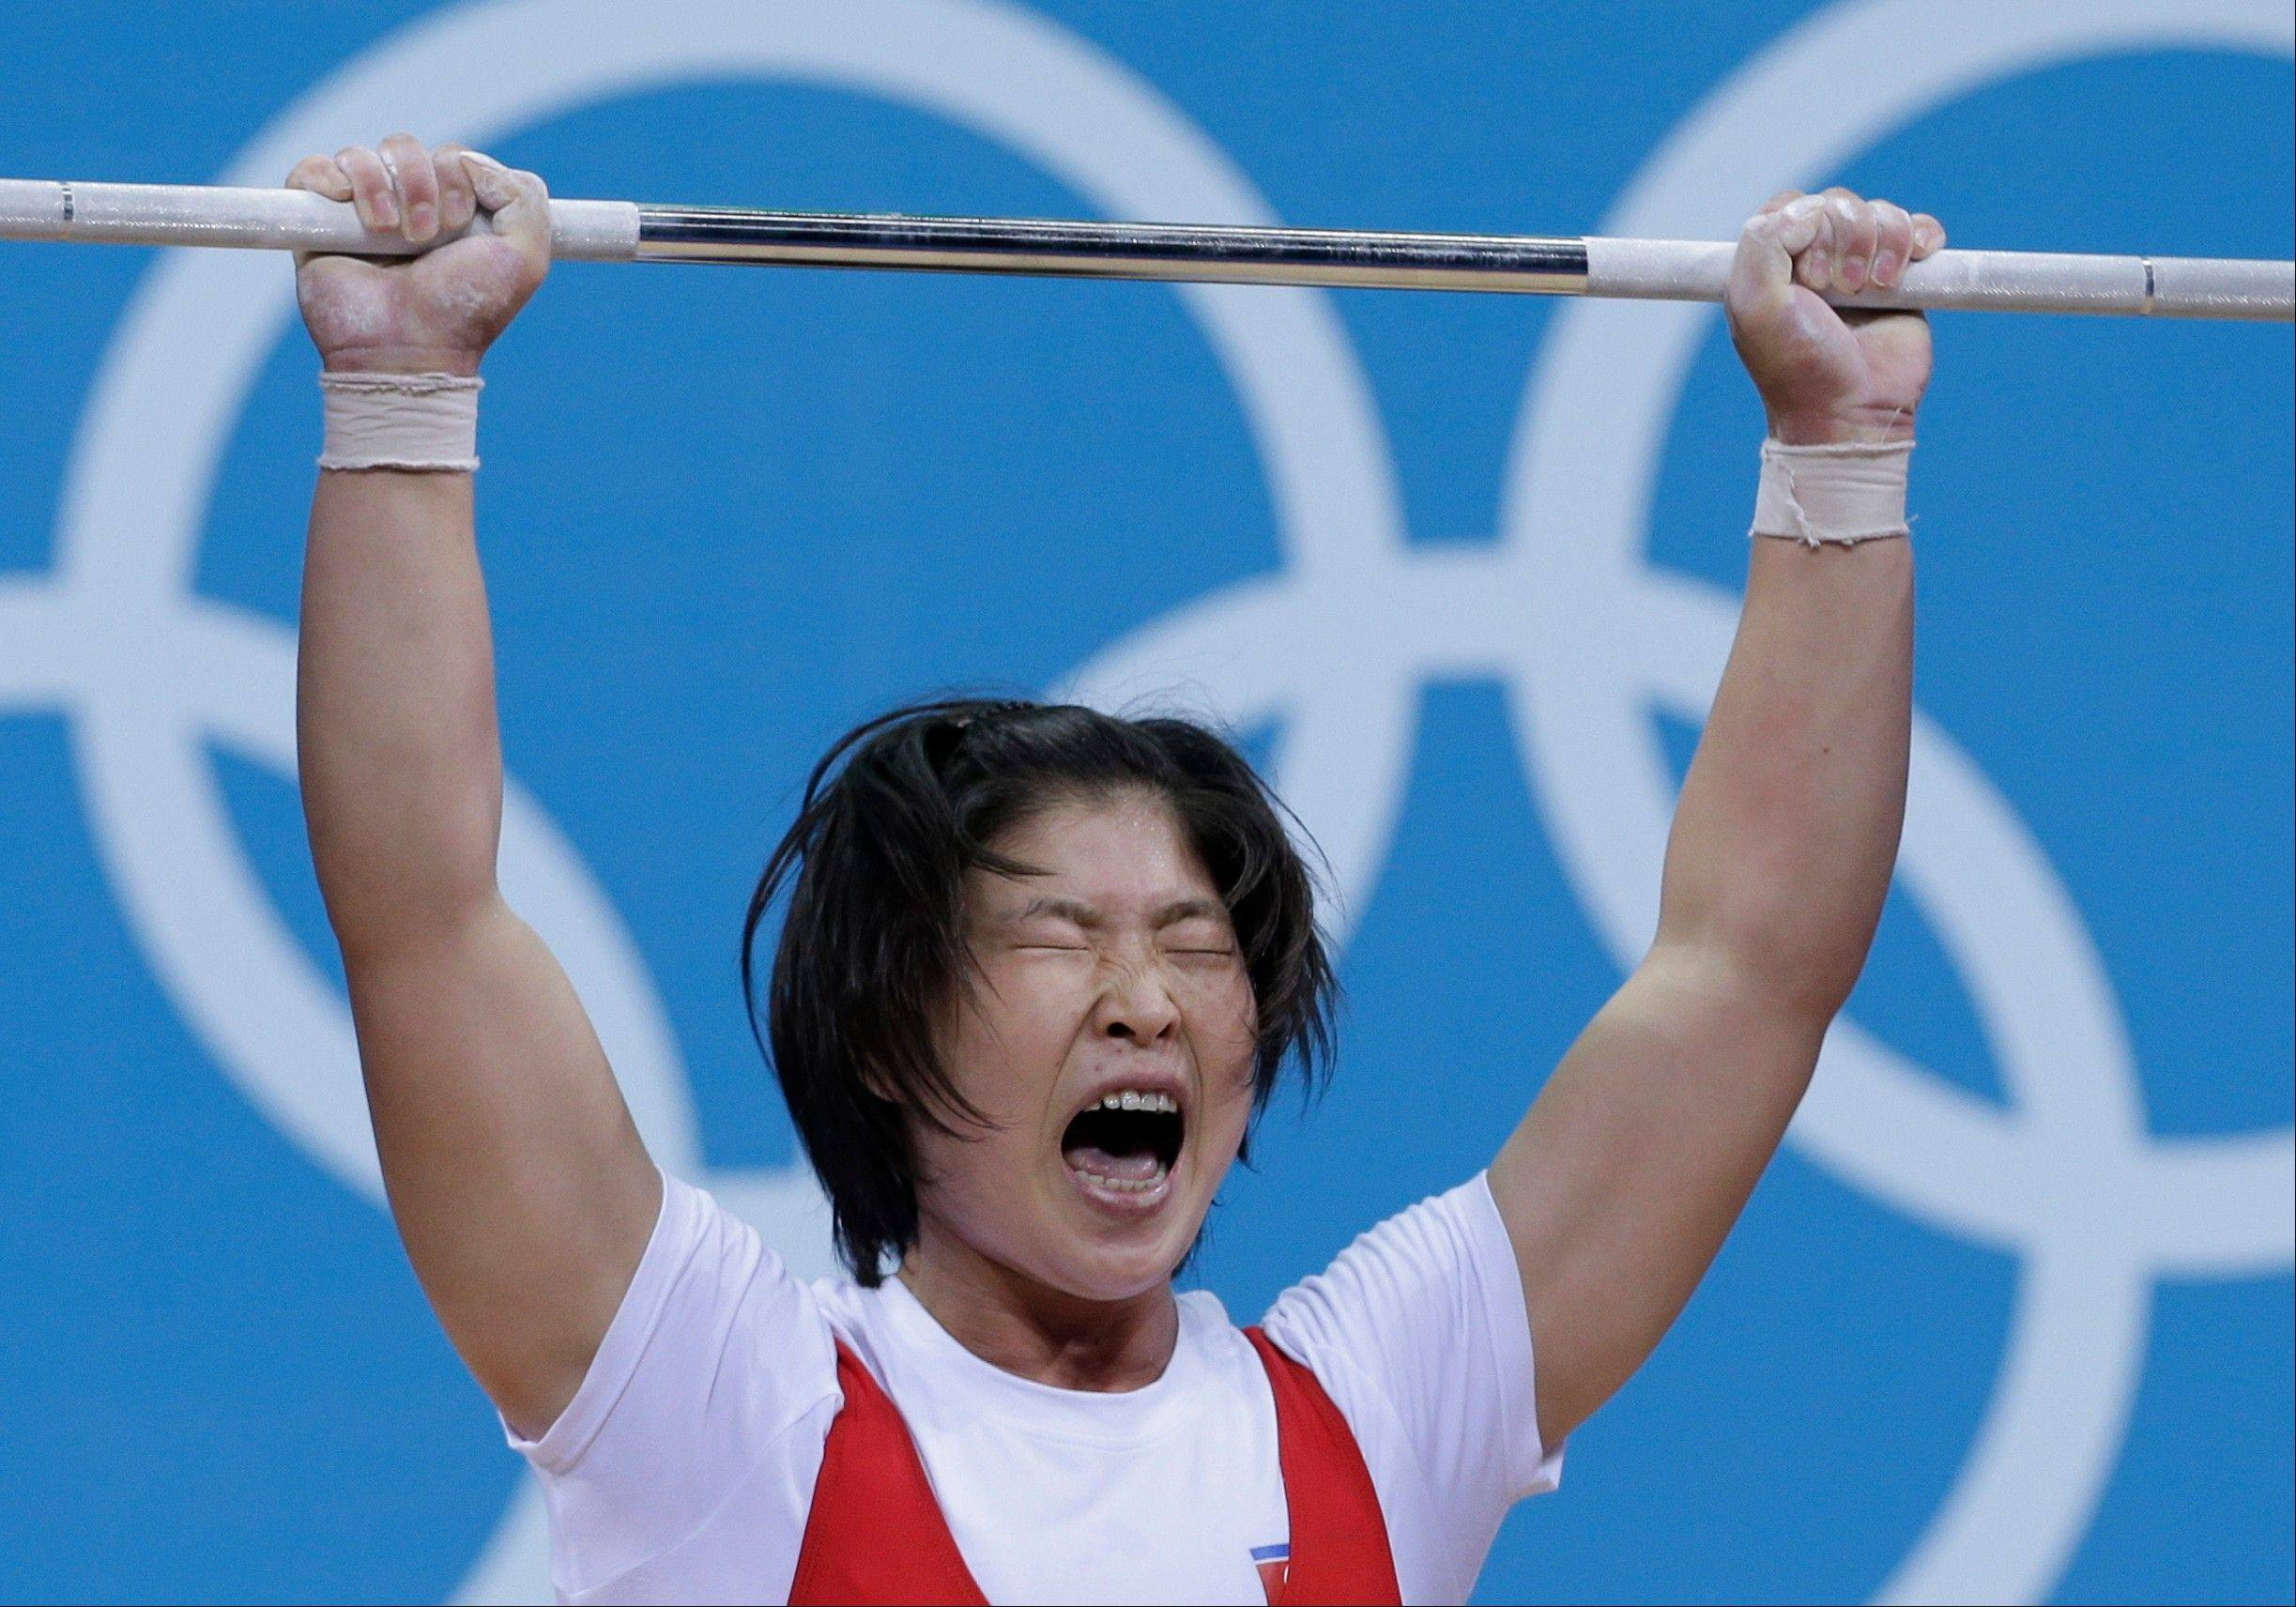 North Korea's Rim Jong Sim competes during the women's 69-kg, group A, weightlifting competition at the 2012 Summer Olympics on Aug. 1. Check out heavyweight women's weightlifting Sunday, while most people are watching Jamaica's Usain Bolt in the men's 100-meter final.